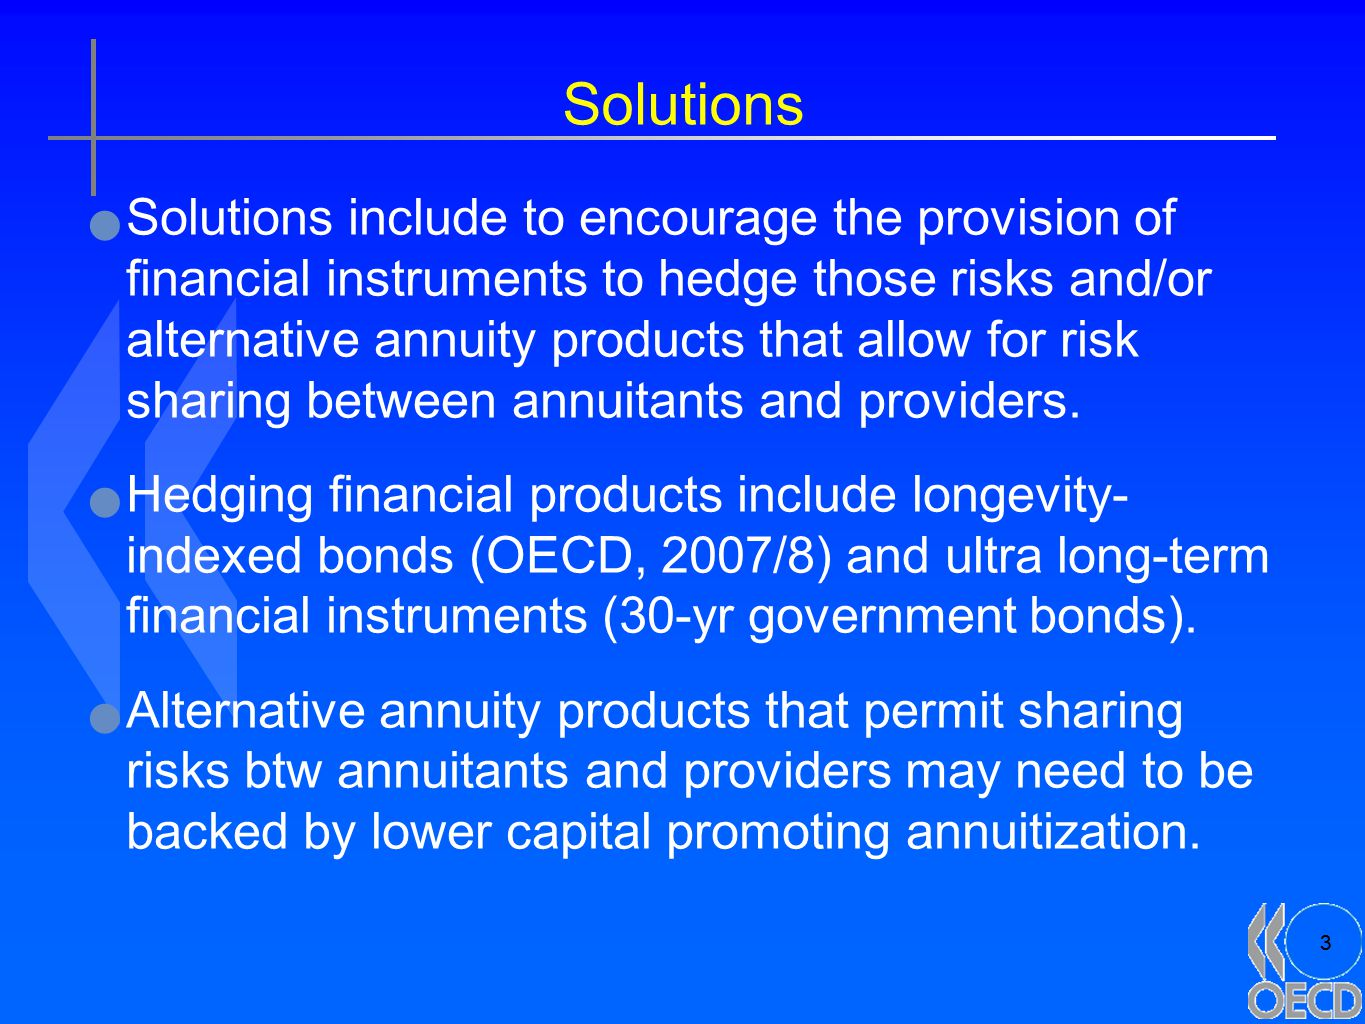 3 Solutions Solutions include to encourage the provision of financial instruments to hedge those risks and/or alternative annuity products that allow for risk sharing between annuitants and providers.